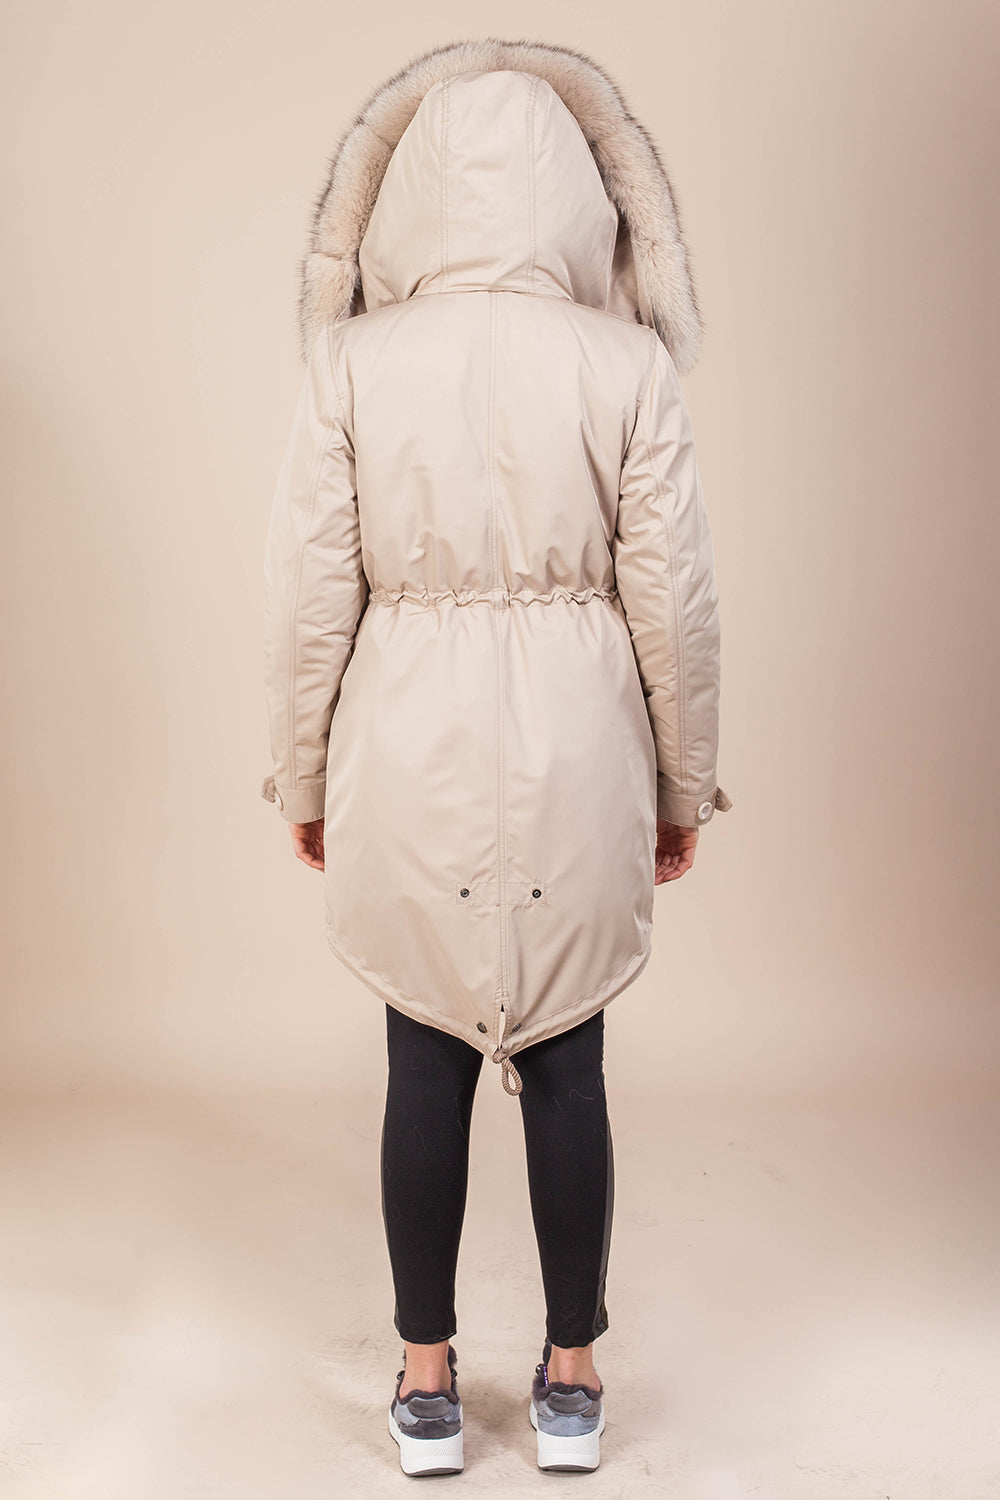 Beige Parka Main Fabric is Waterproof / Raincoat Fabric With Beige / Blue Fox